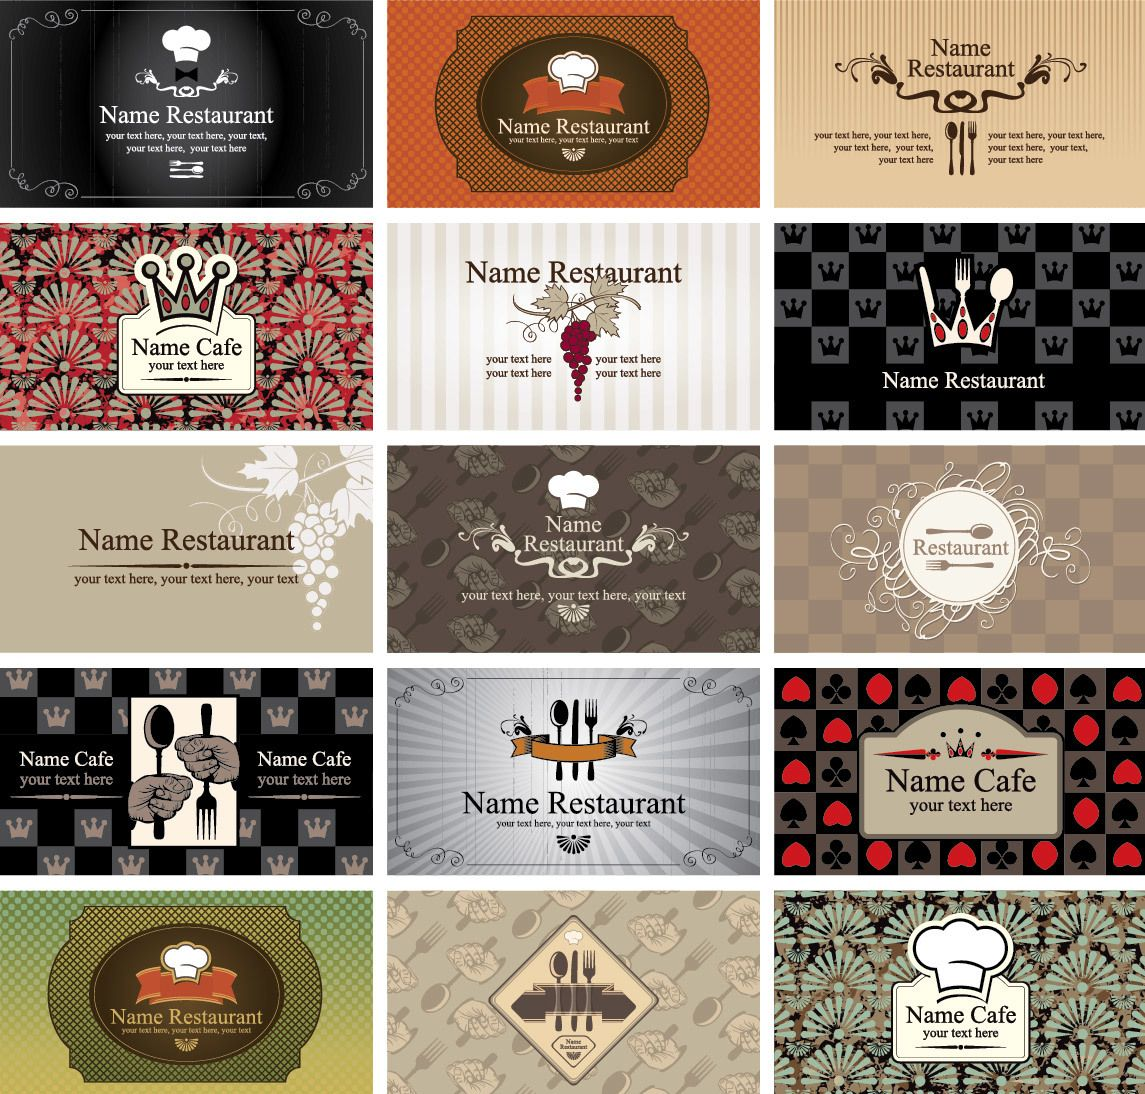 Western style restaurant cafe business card set vector download image user colourmoves